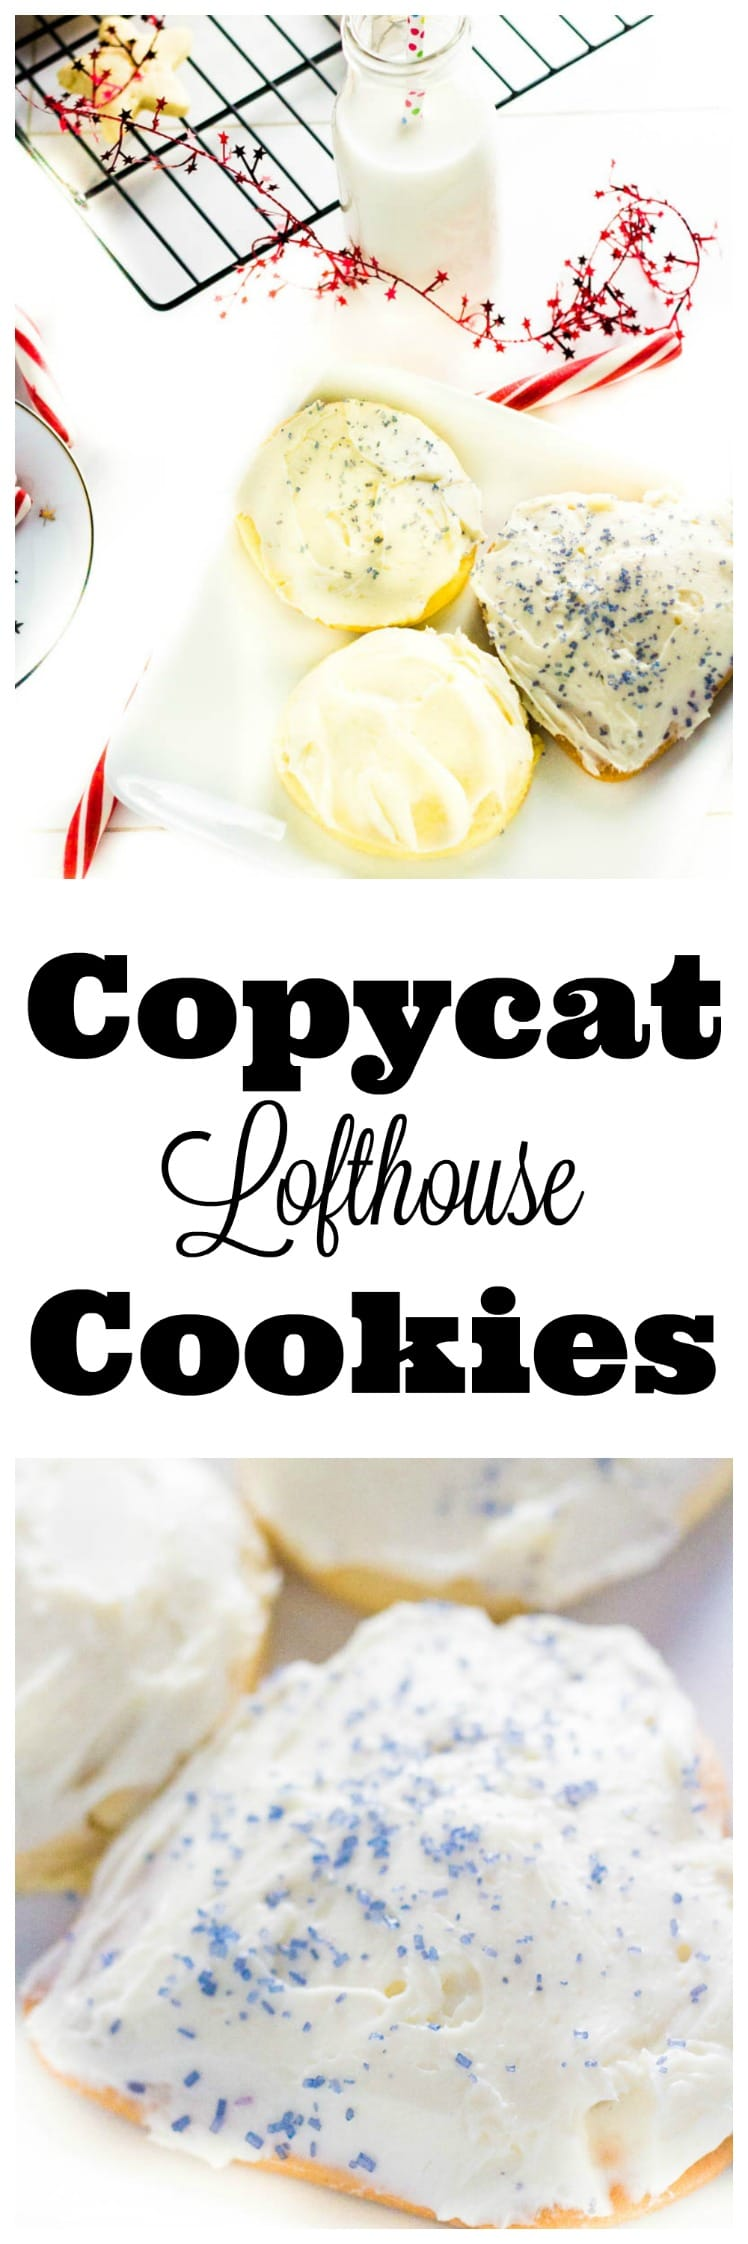 These copycat lofthouse cookies are the softest and fluffiest sugar cookies ever! They are the copycat recipe of all those store-bought cookies, only without preservatives and incredibly more delicious!